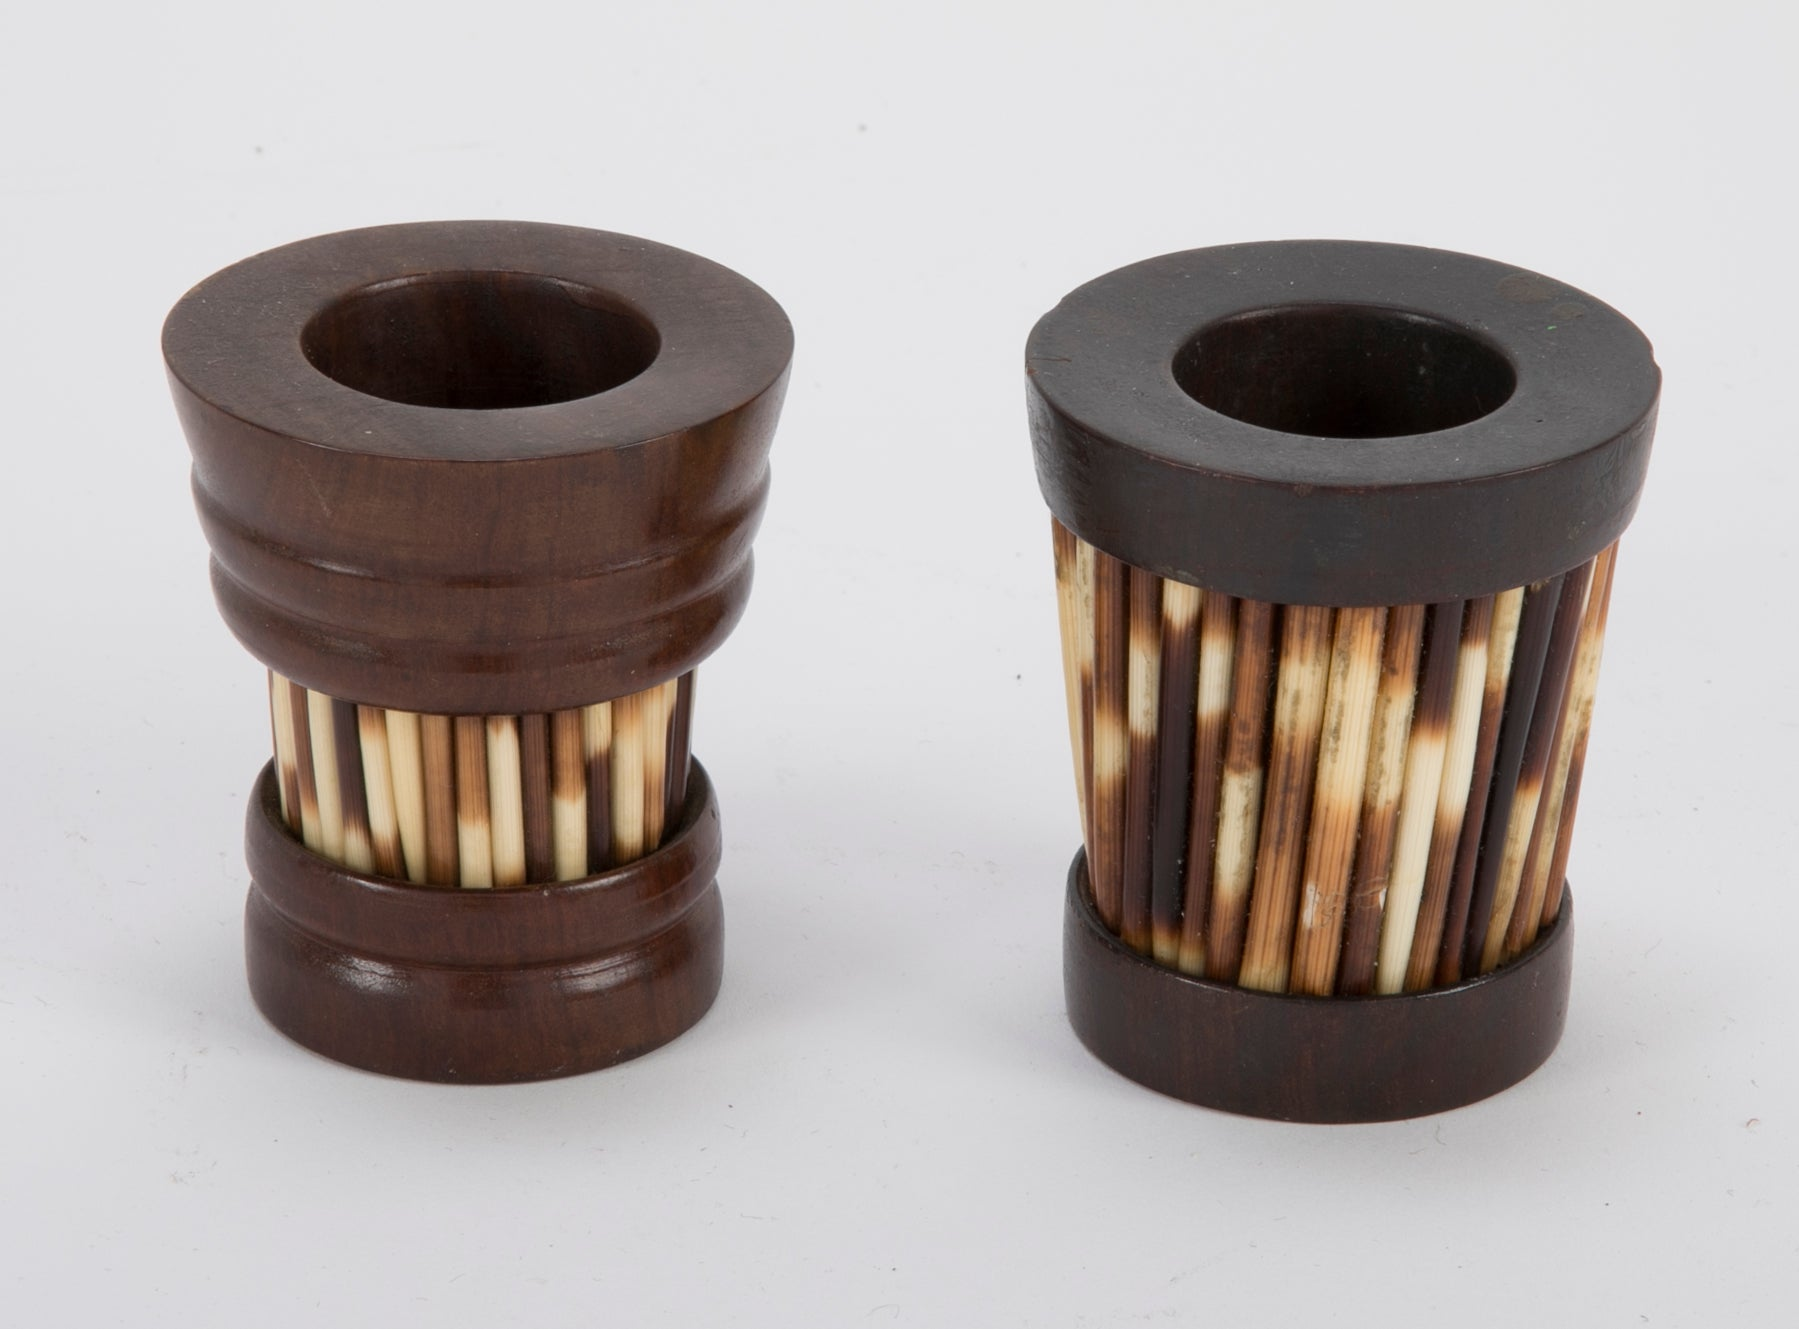 Pair of Anglo-Indian Porcupine Quill Match Holders